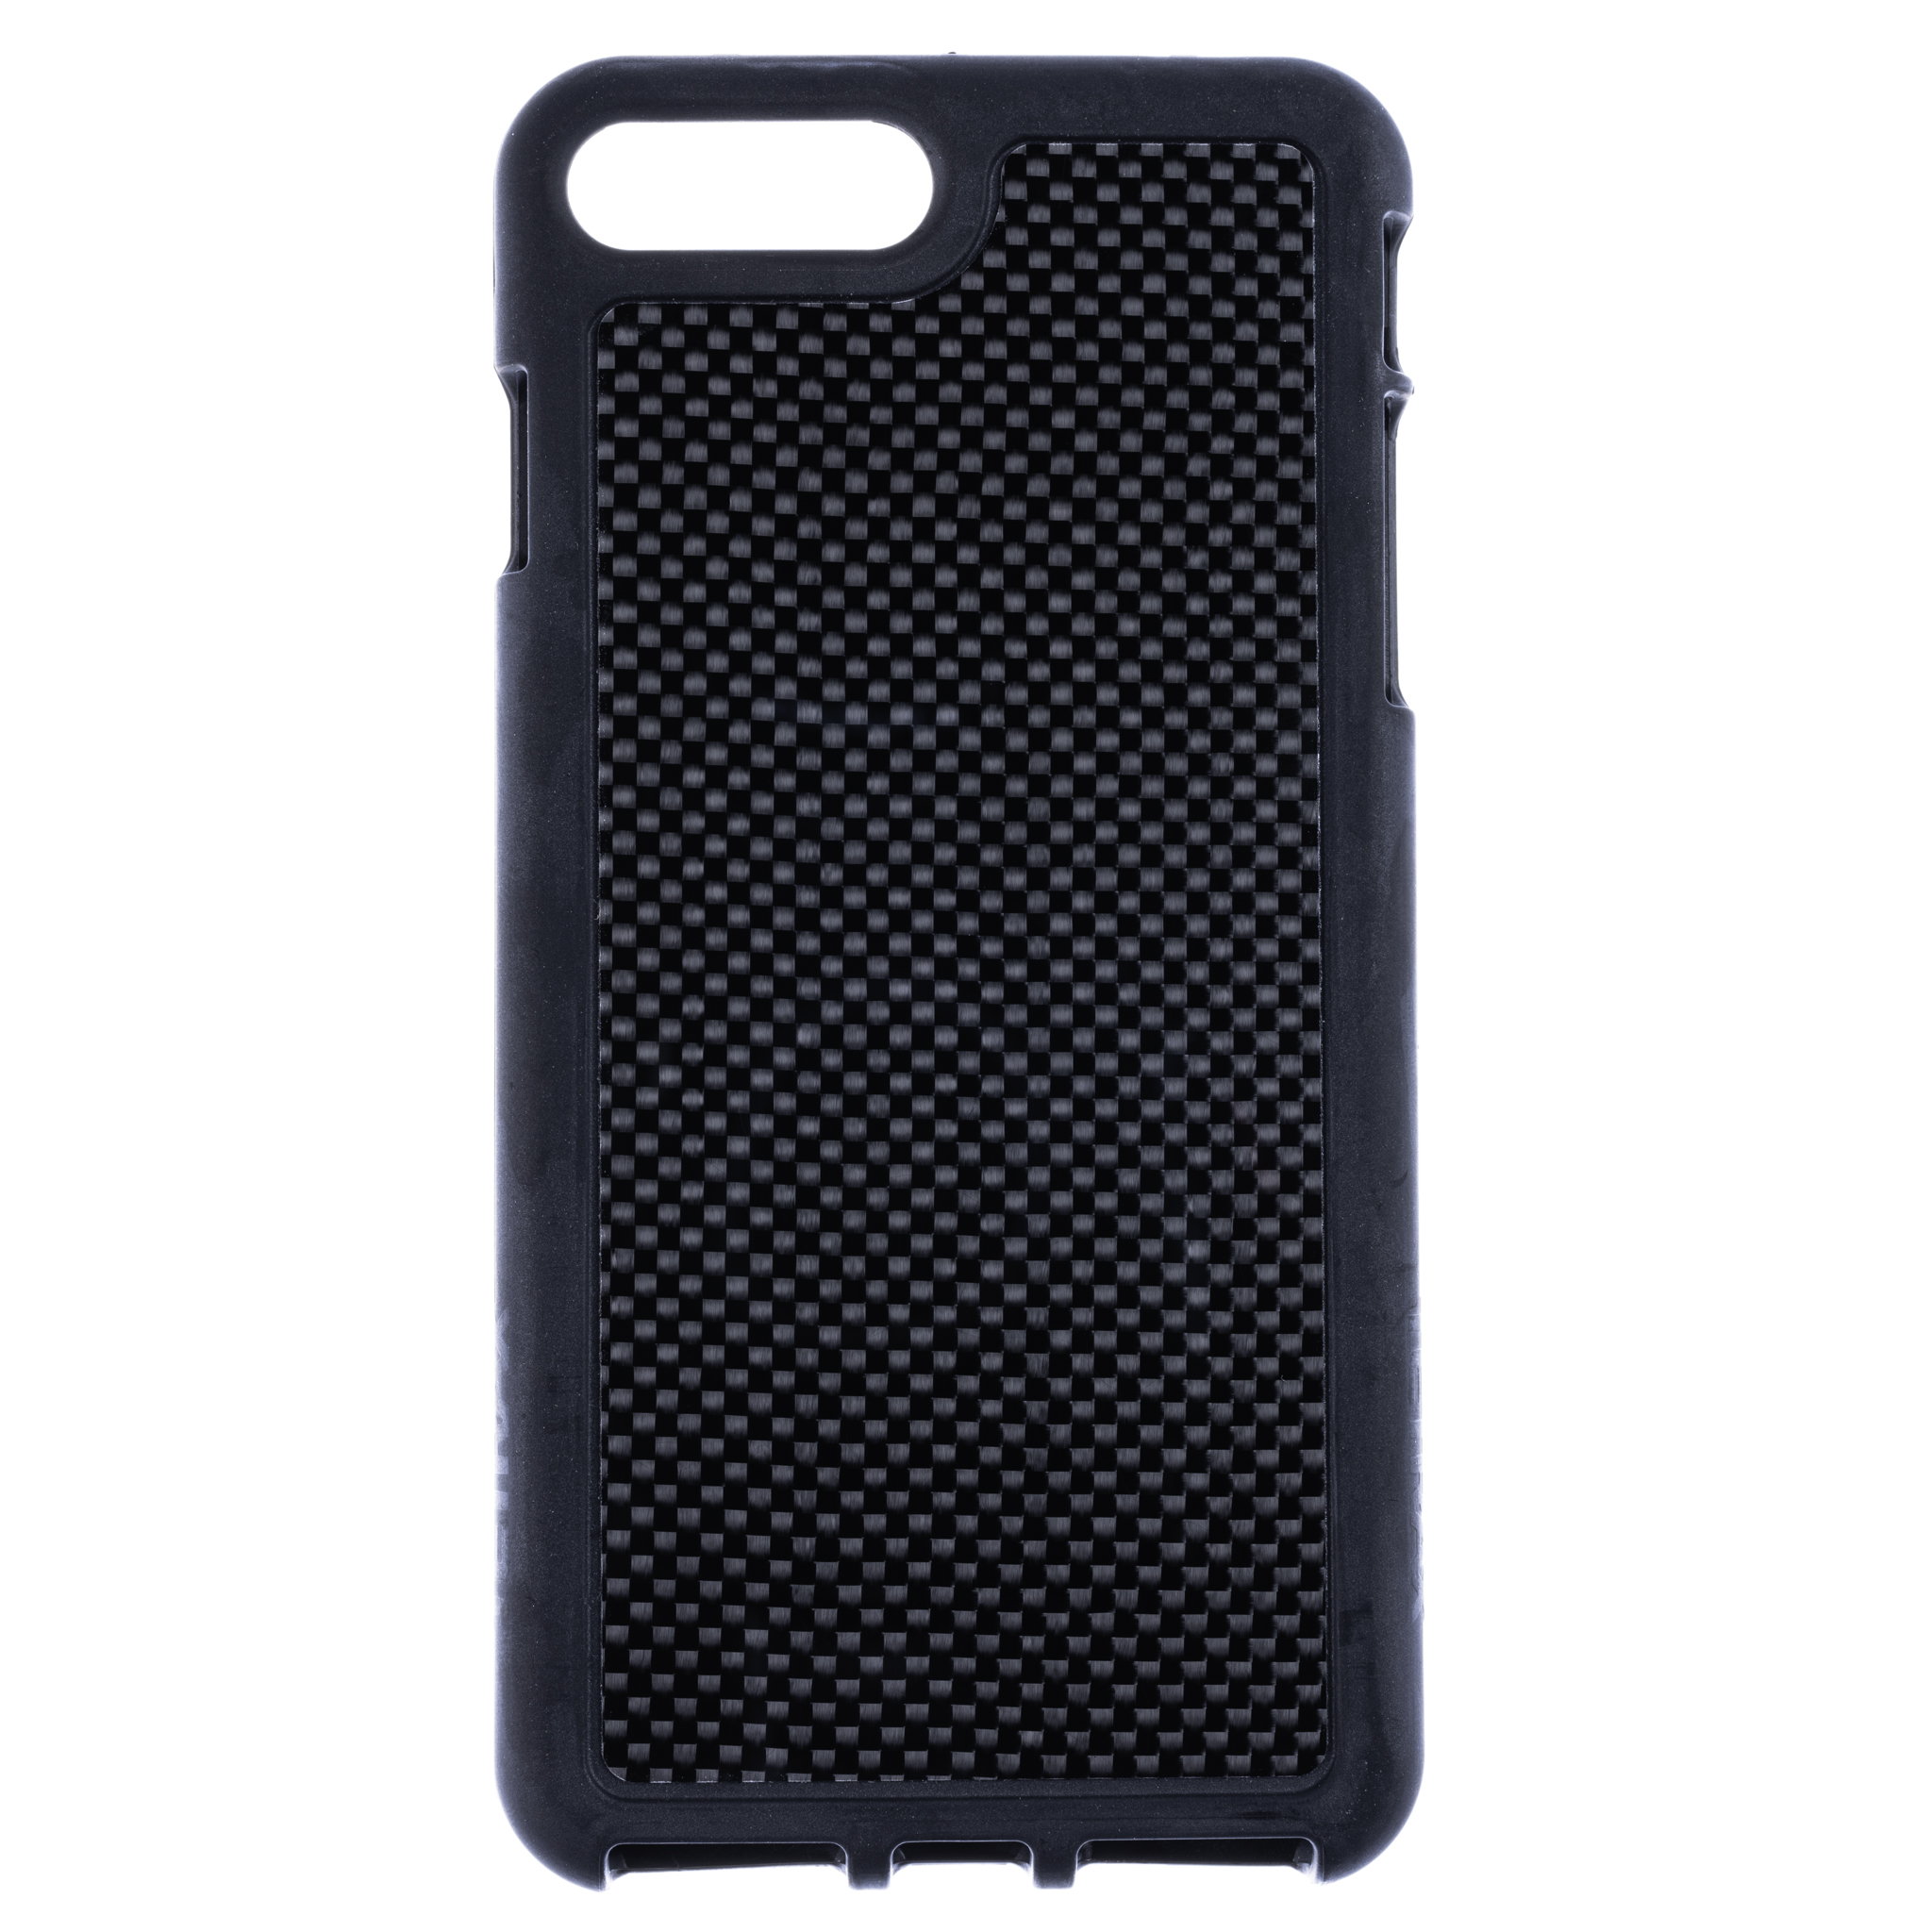 iPhone 7 Plus Carbon Fibre Case